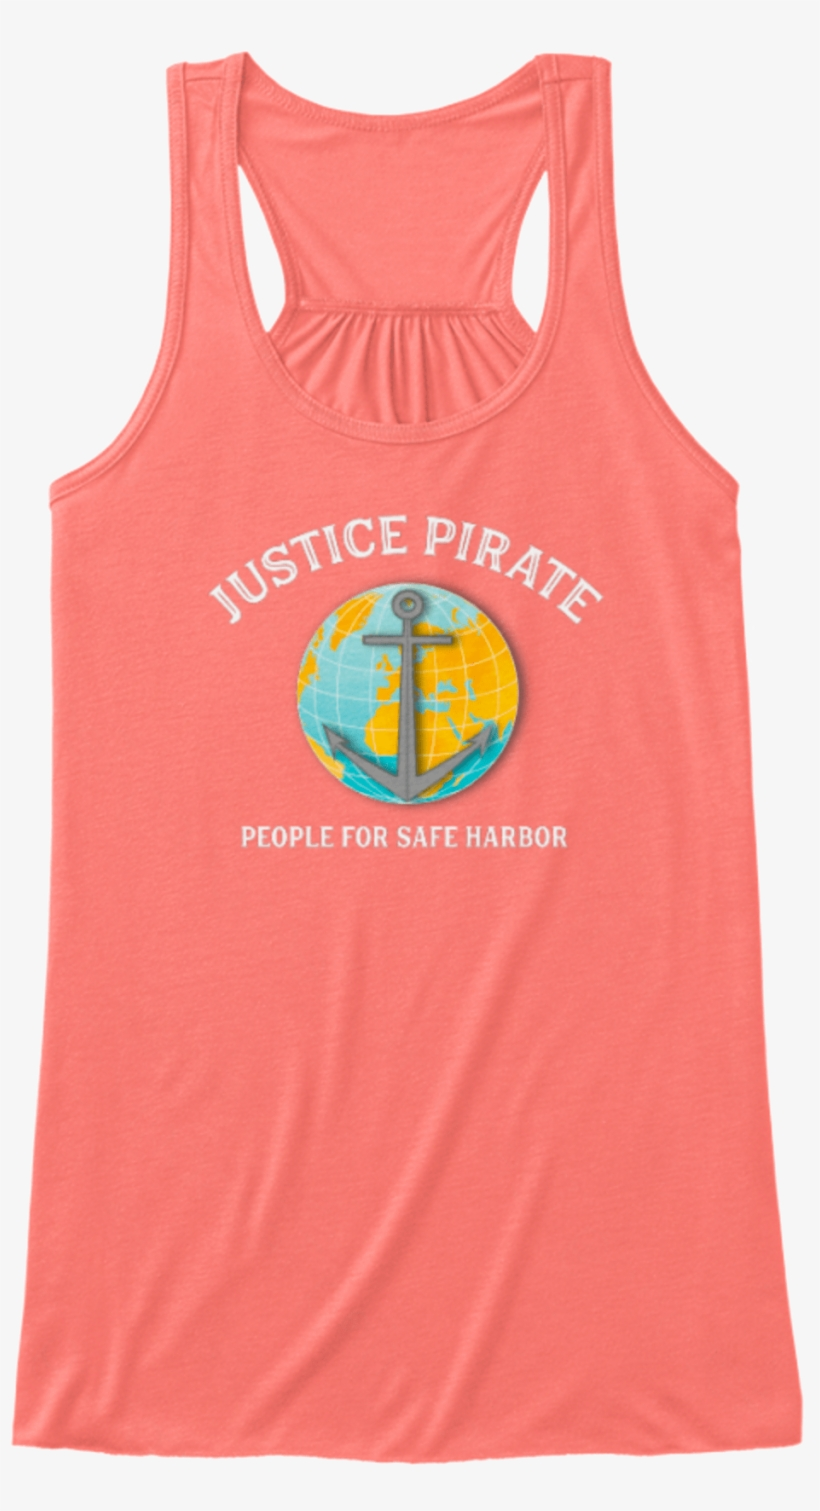 Justice Pirate People For Safe Harbor This Is A Fundraiser - Power Cycle Women's Tank Tops, transparent png #5520061